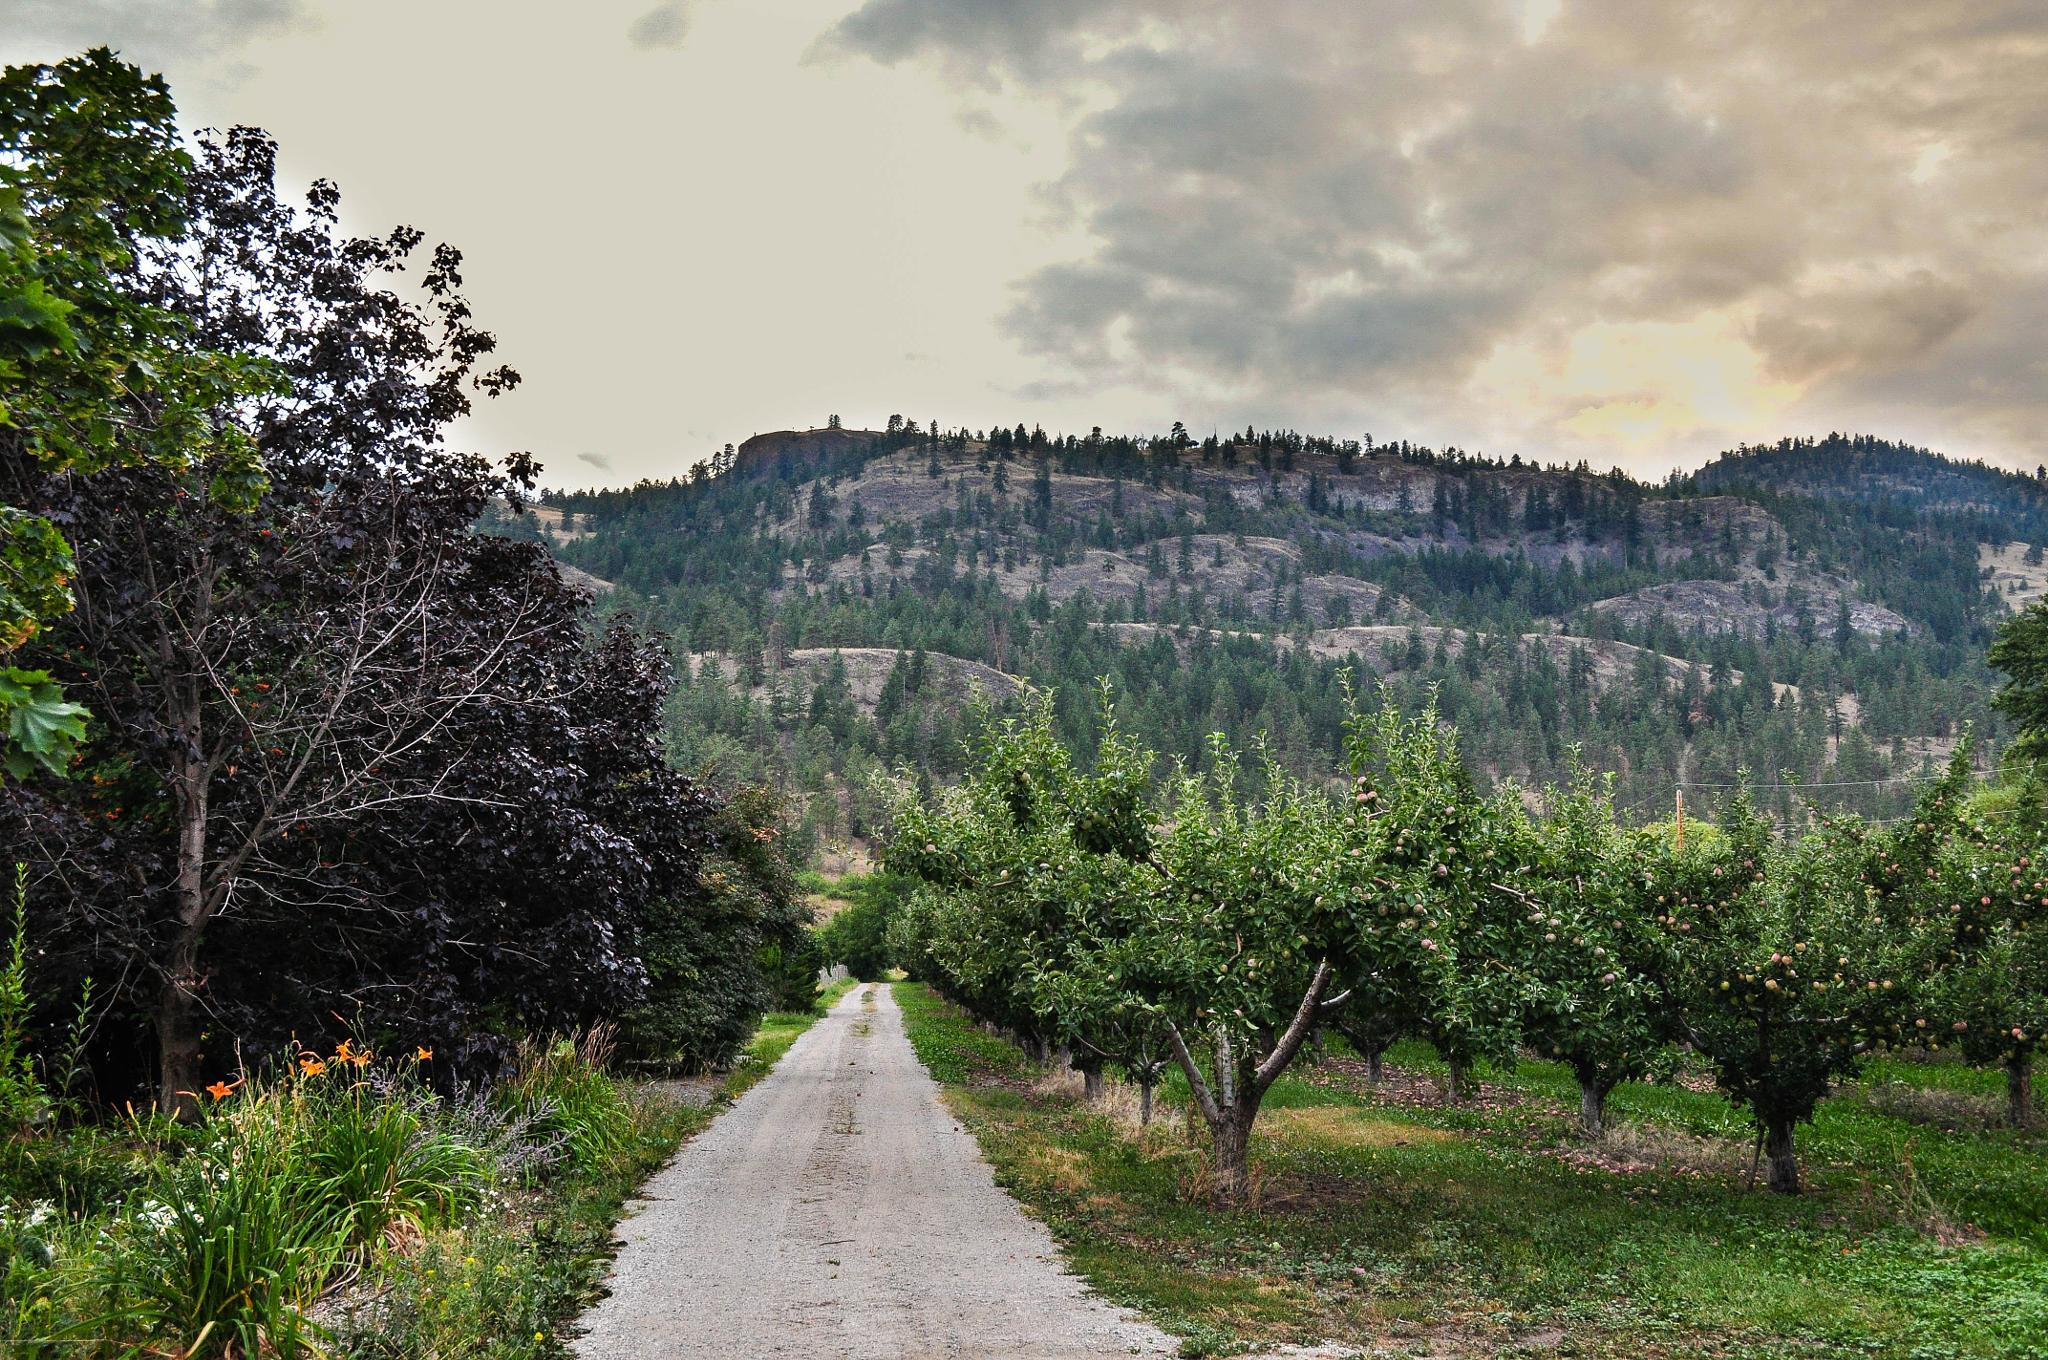 The Road Into the Orchard at Dusk by Ang Klassen